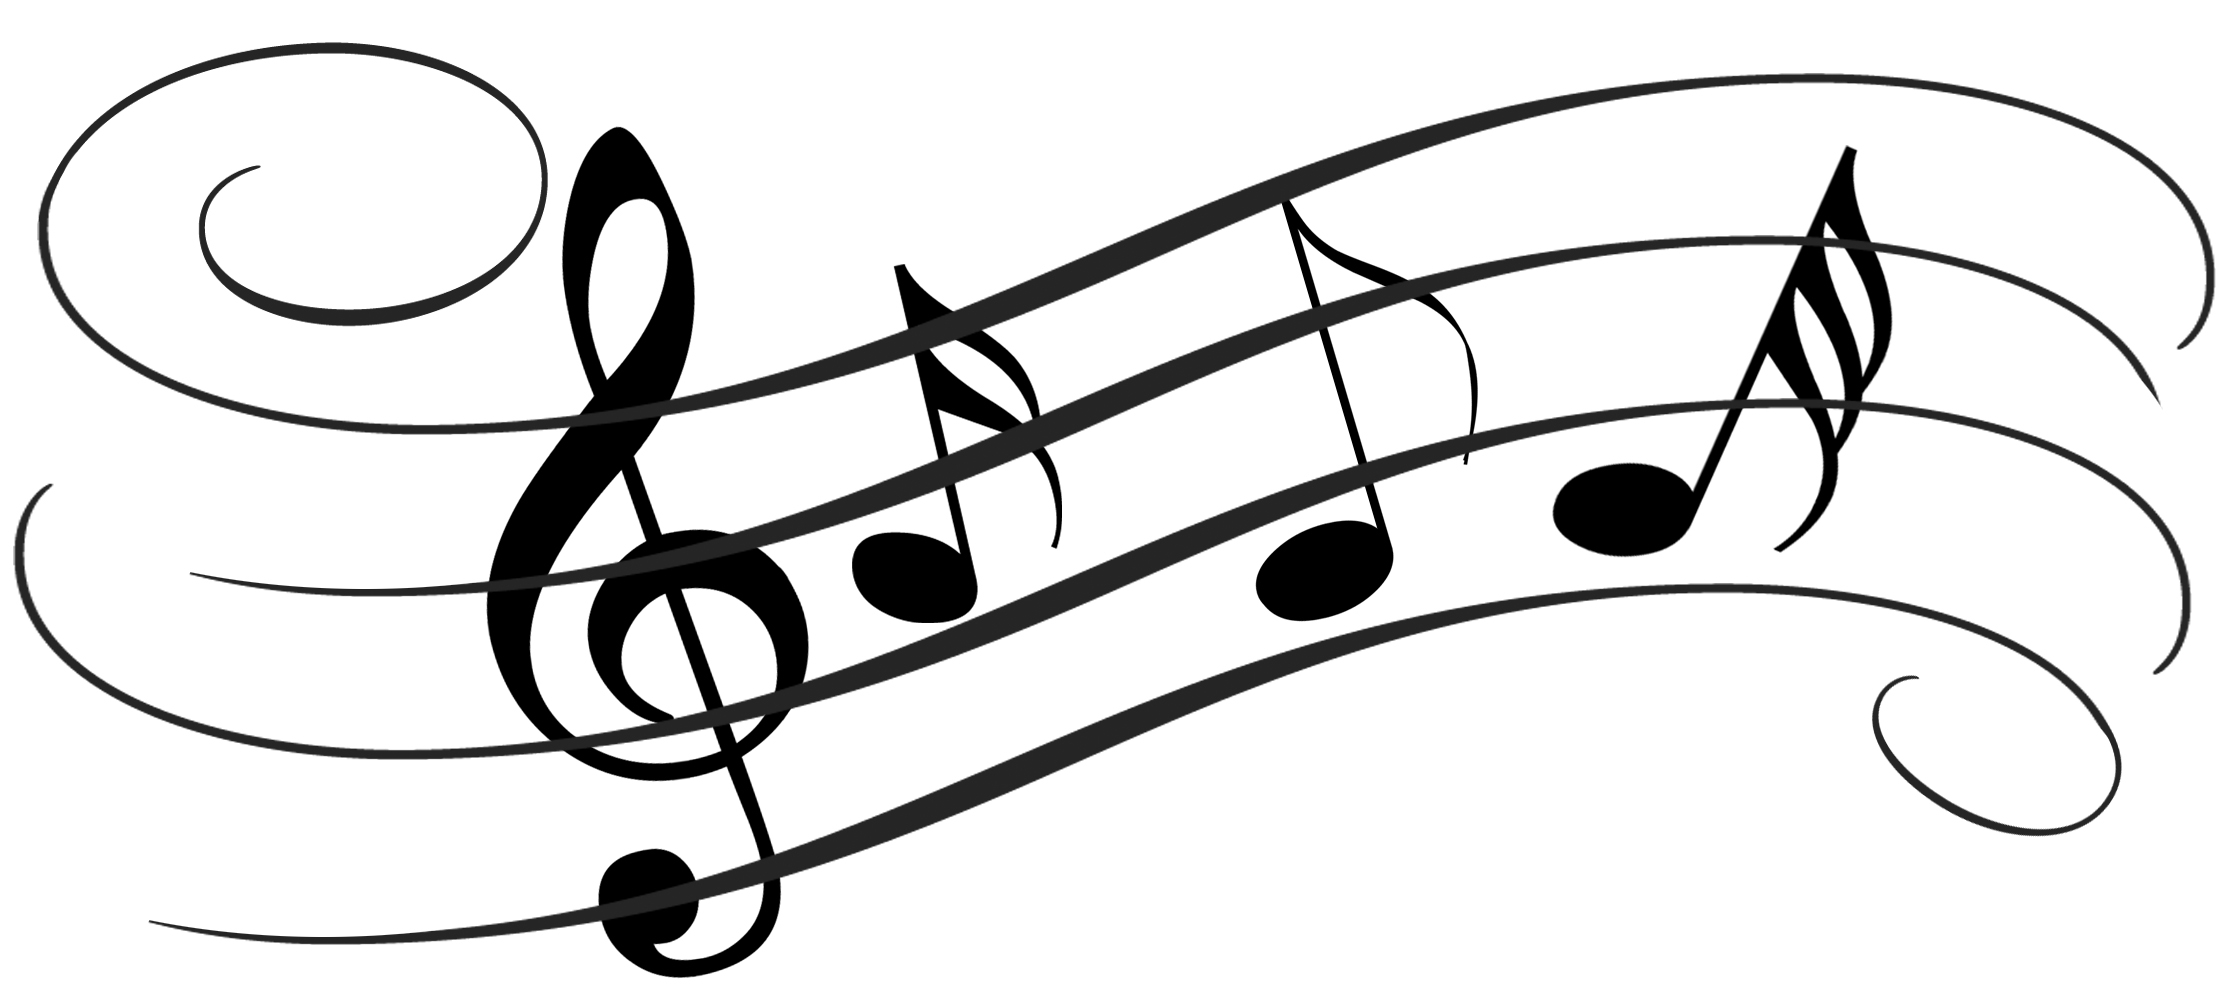 2236x1006 Musical Notes Music Notes Symbols Clip Art Free Clipart Images 2